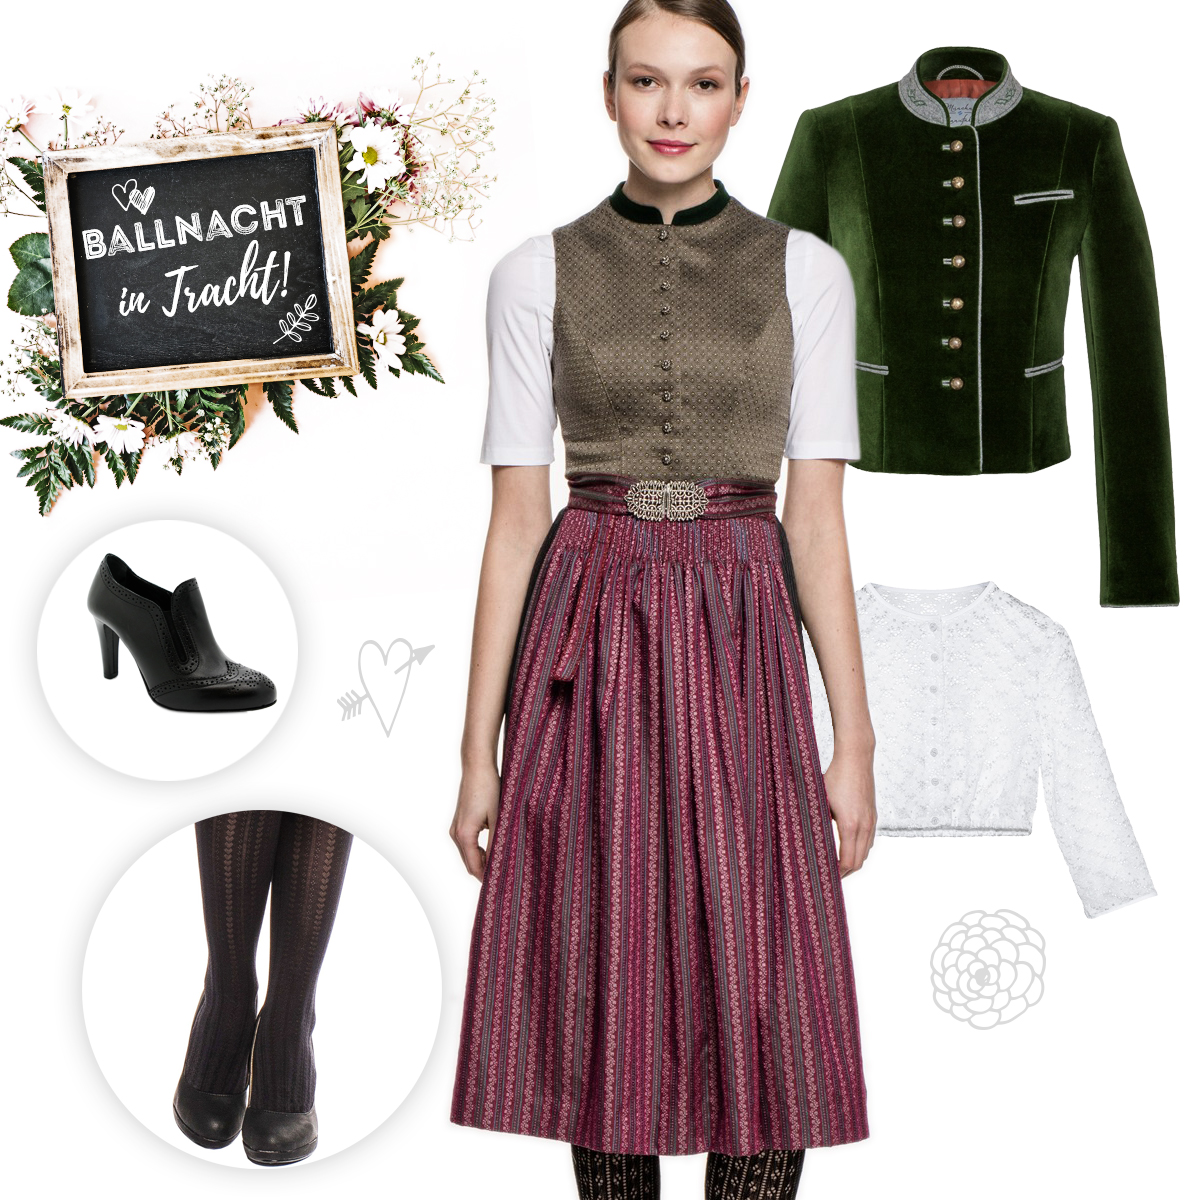 FB-Winterball-Outfit-03